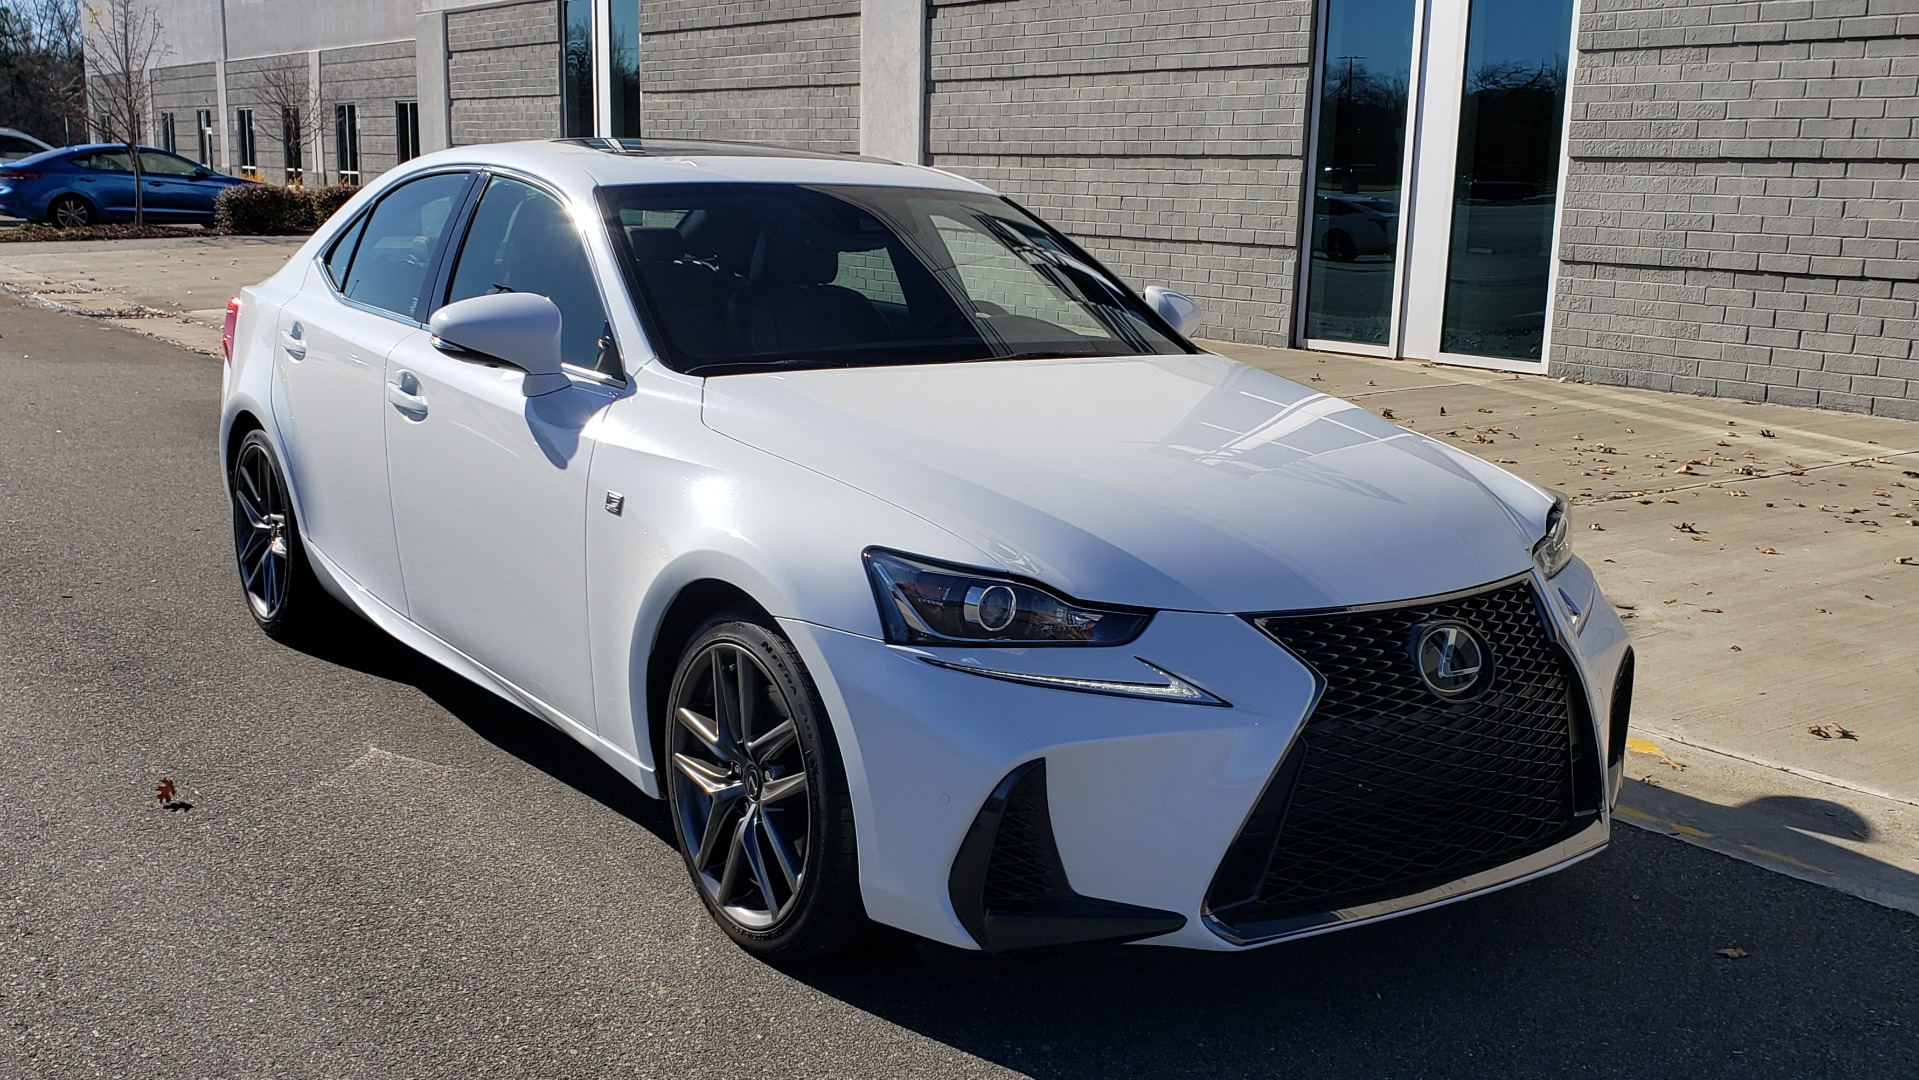 Used 2018 Lexus IS 300 F-SPORT / BSM / SUNROOF / REARVIEW / 18IN WHEELS for sale Sold at Formula Imports in Charlotte NC 28227 4